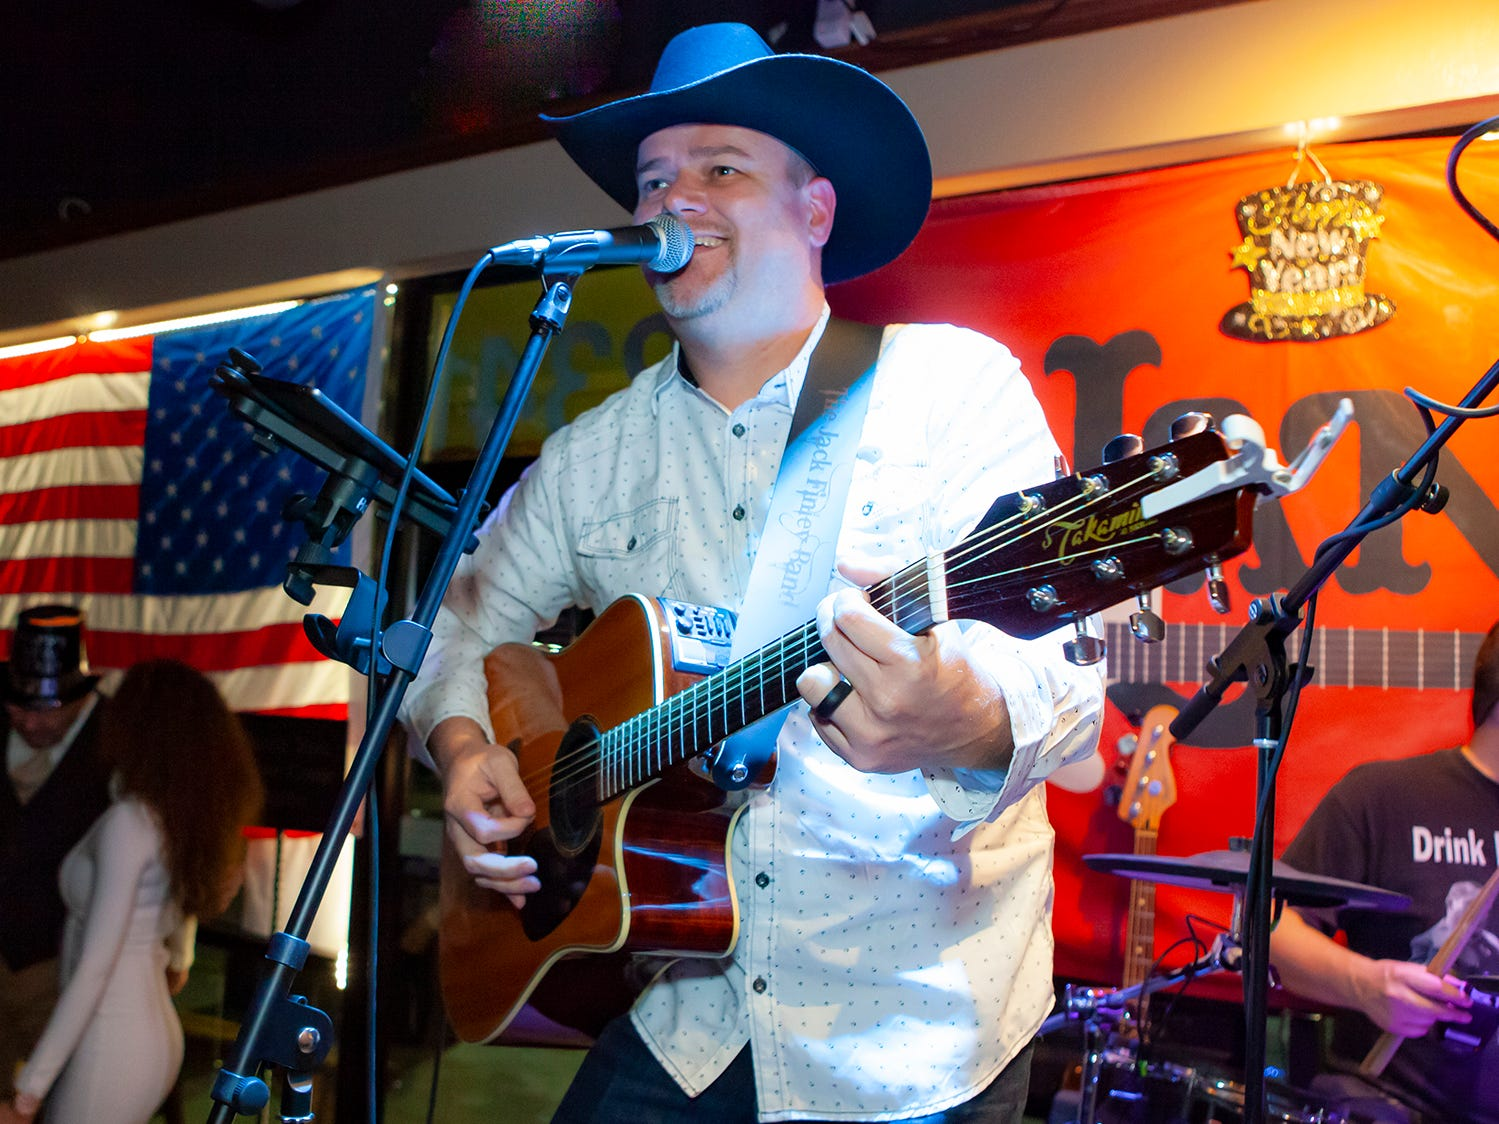 Jack Finley of  Jack Finley Band entertains the crowd at the New Year's party at Hank's Honky Tonk in Murfreesboro.